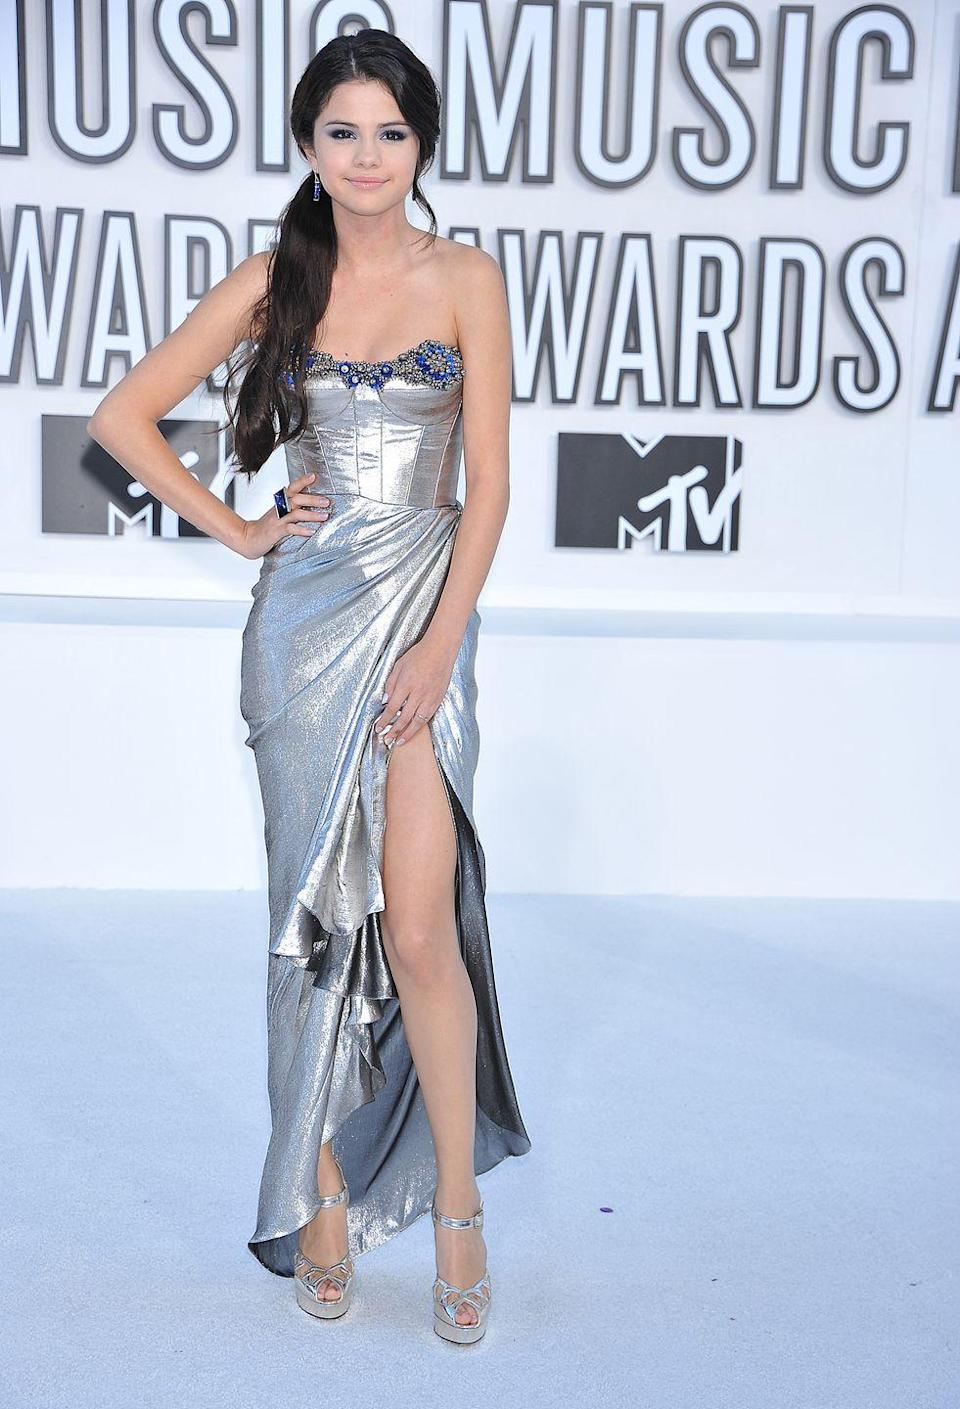 <p>Selena Gomez glowed in this silver gown with a thigh-high slit at the 2010 VMAs.</p>